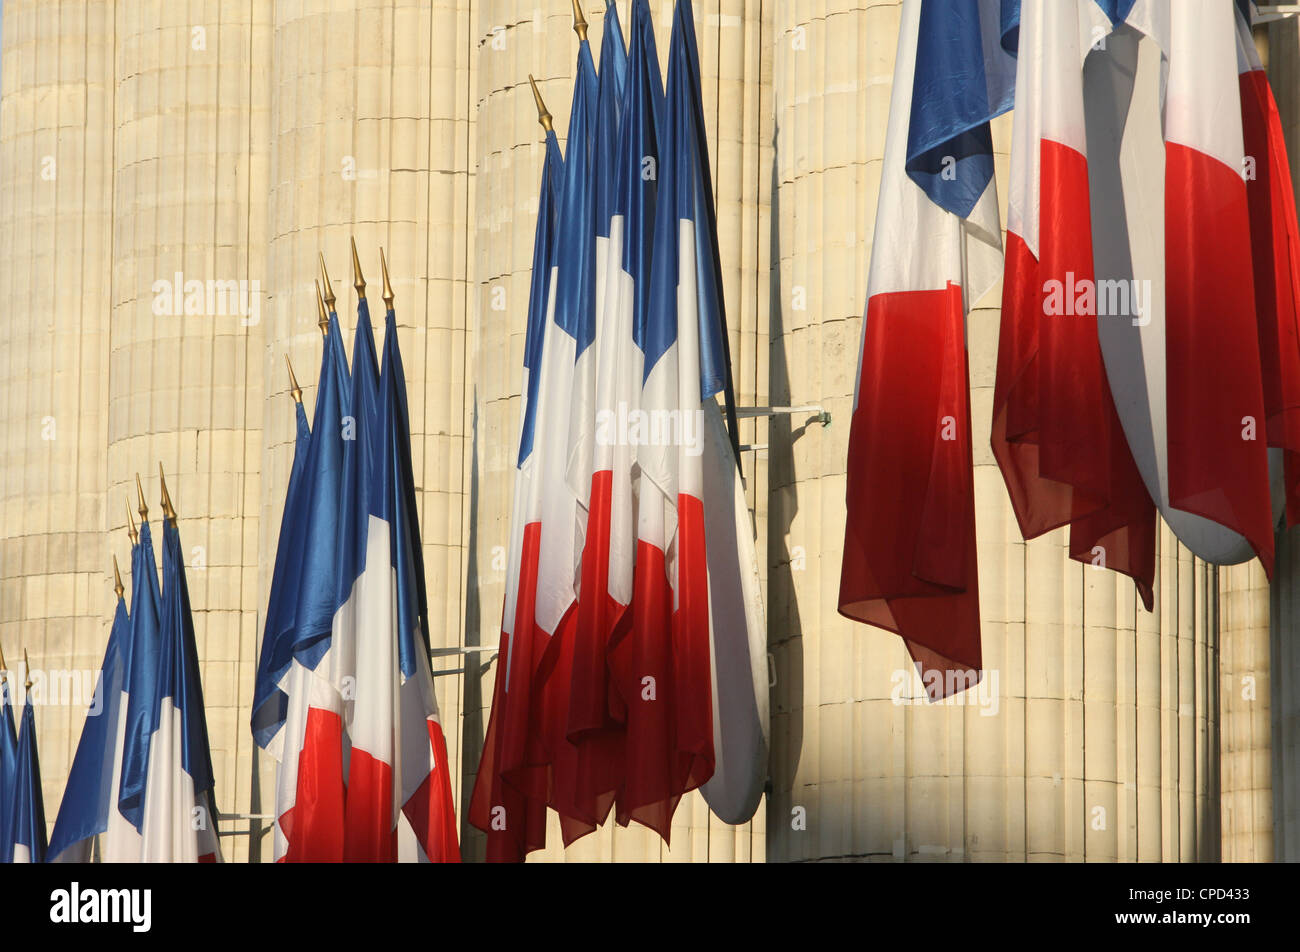 French flags outside the Pantheon, Paris, France, Europe - Stock Image